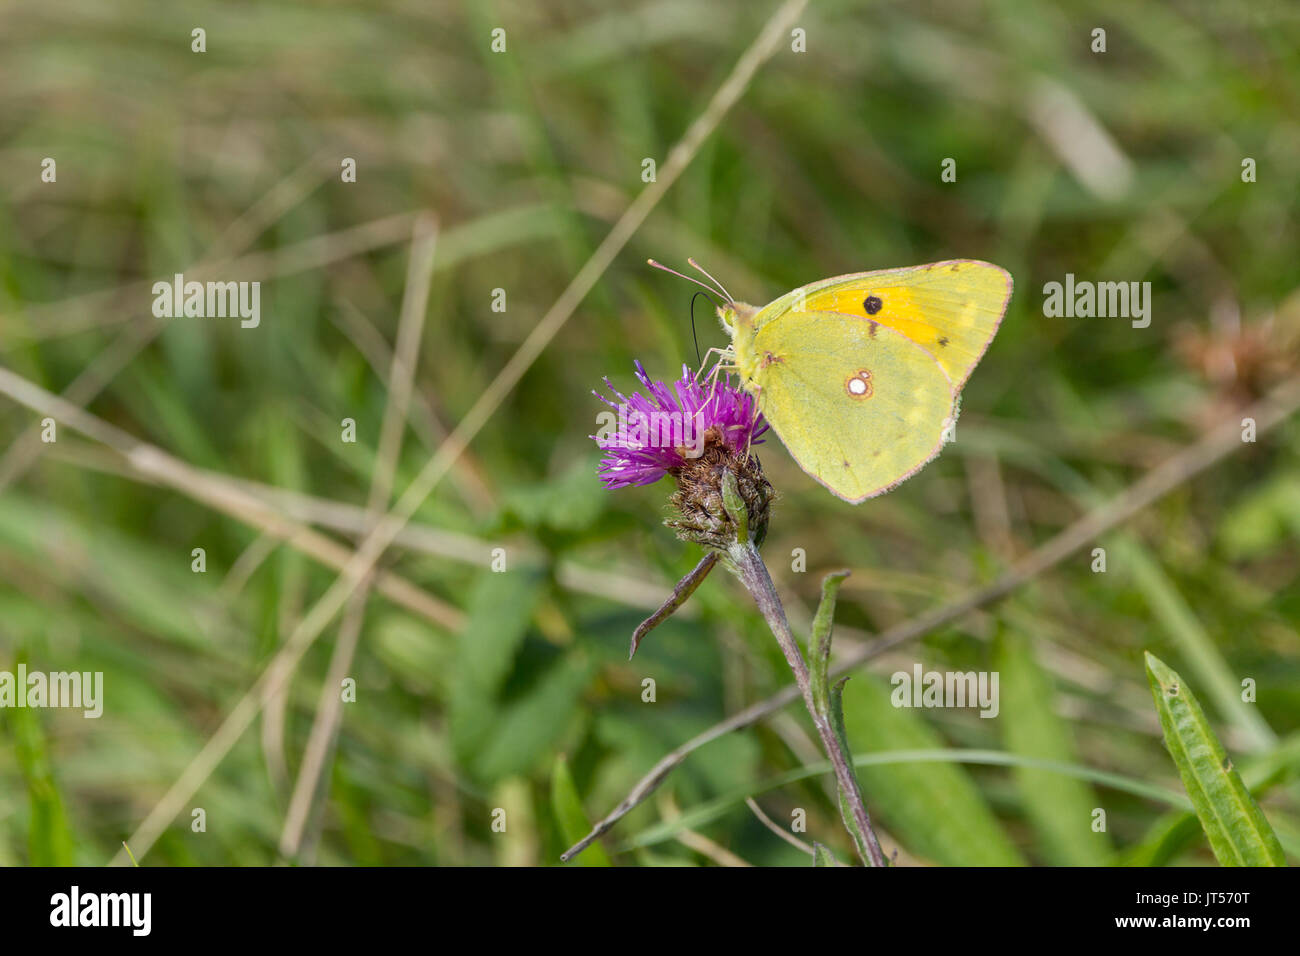 Clouded yellow or Colias croceus butterfly in landscape format with copy space on thistle flower head feeding on nector. - Stock Image